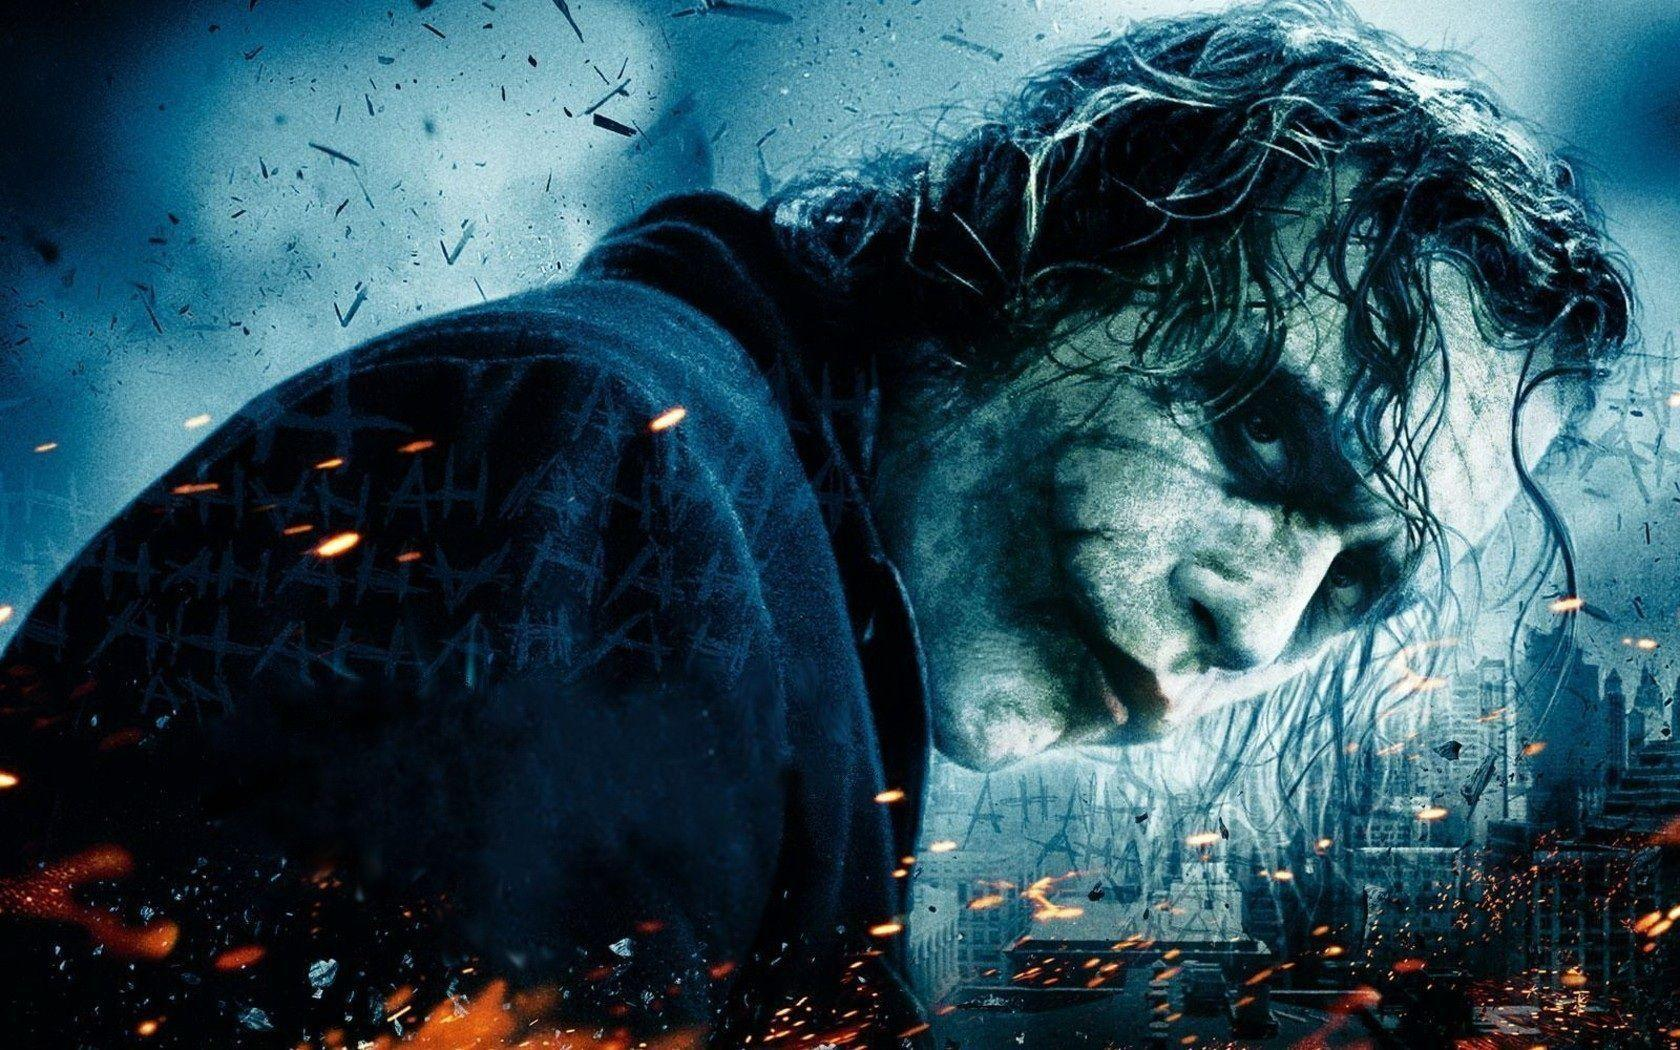 Heath Ledger Joker Wallpapers - Wallpaper Cave